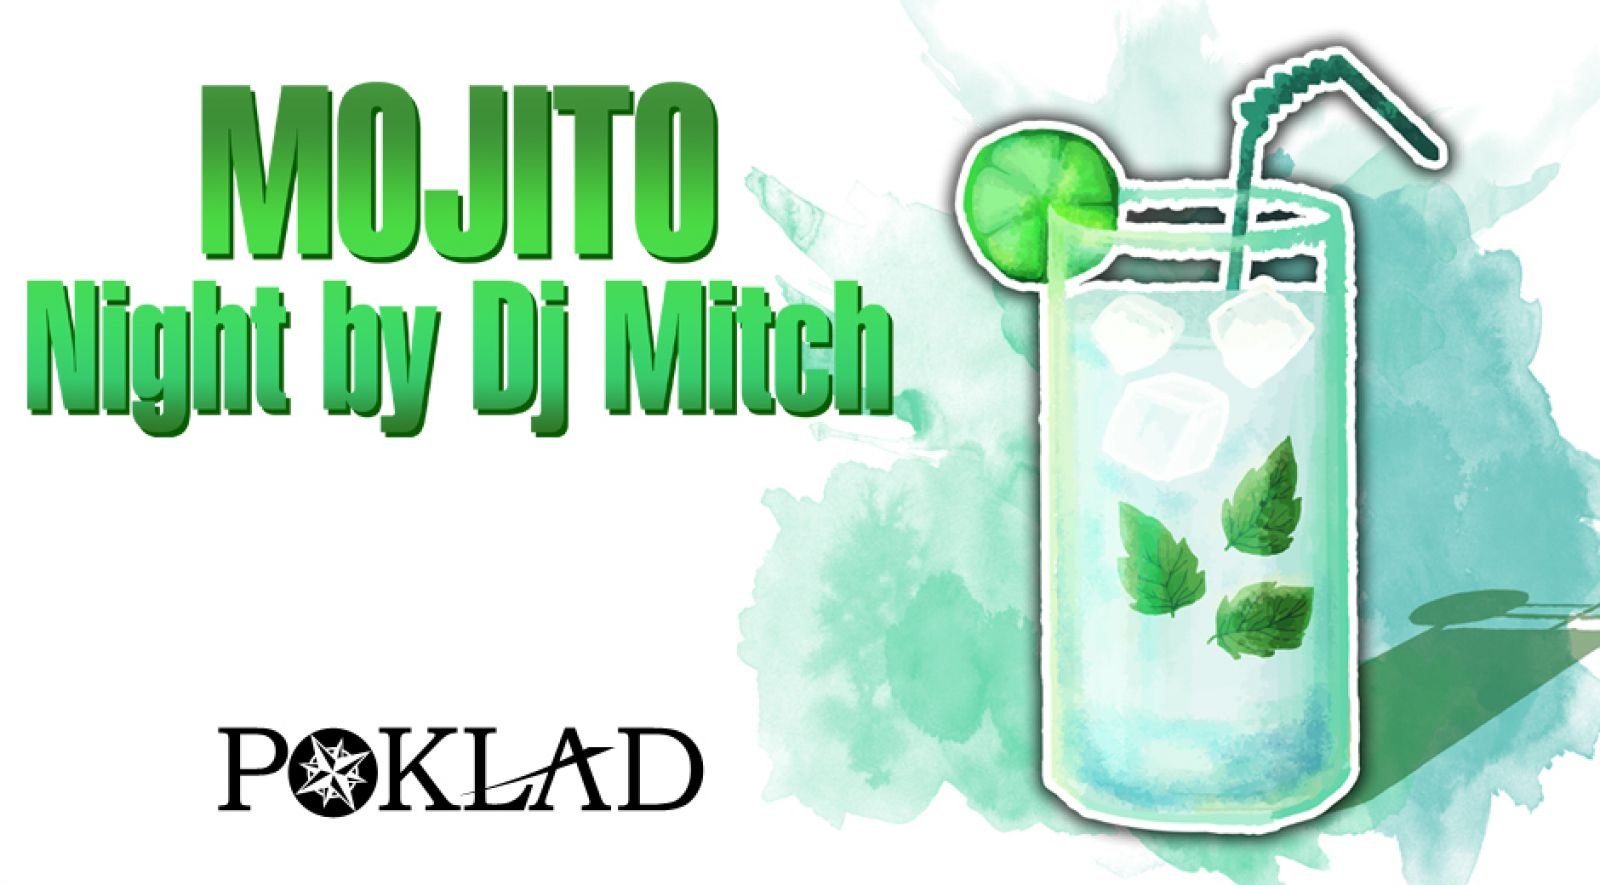 27.10 - Mojito Night by Dj Mitch